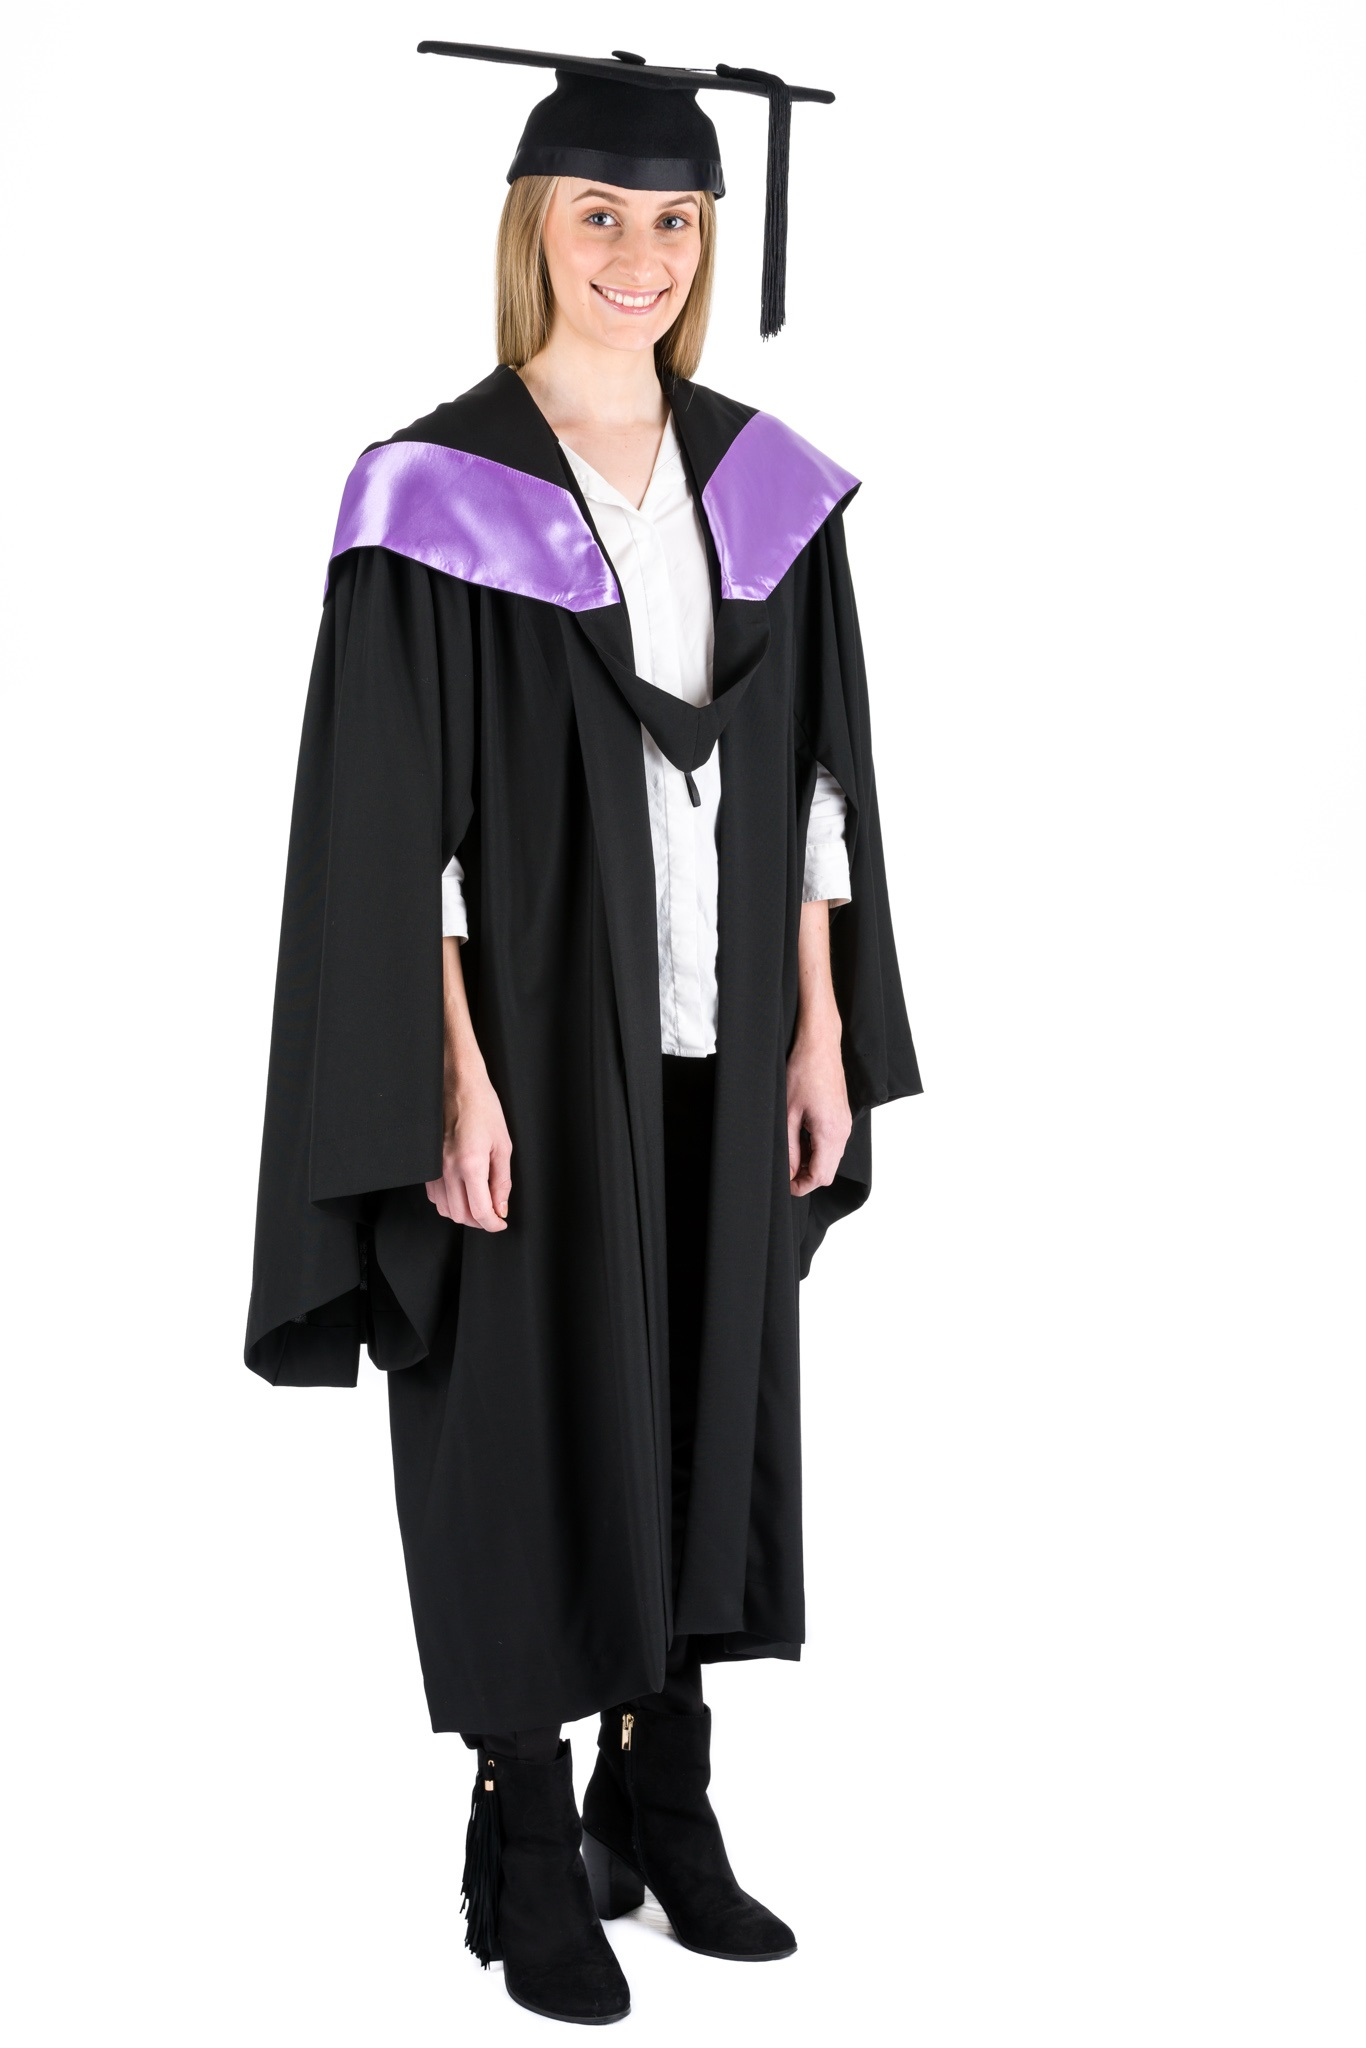 Lilac Bachelor Hood Academic Dress – The Gown Chick